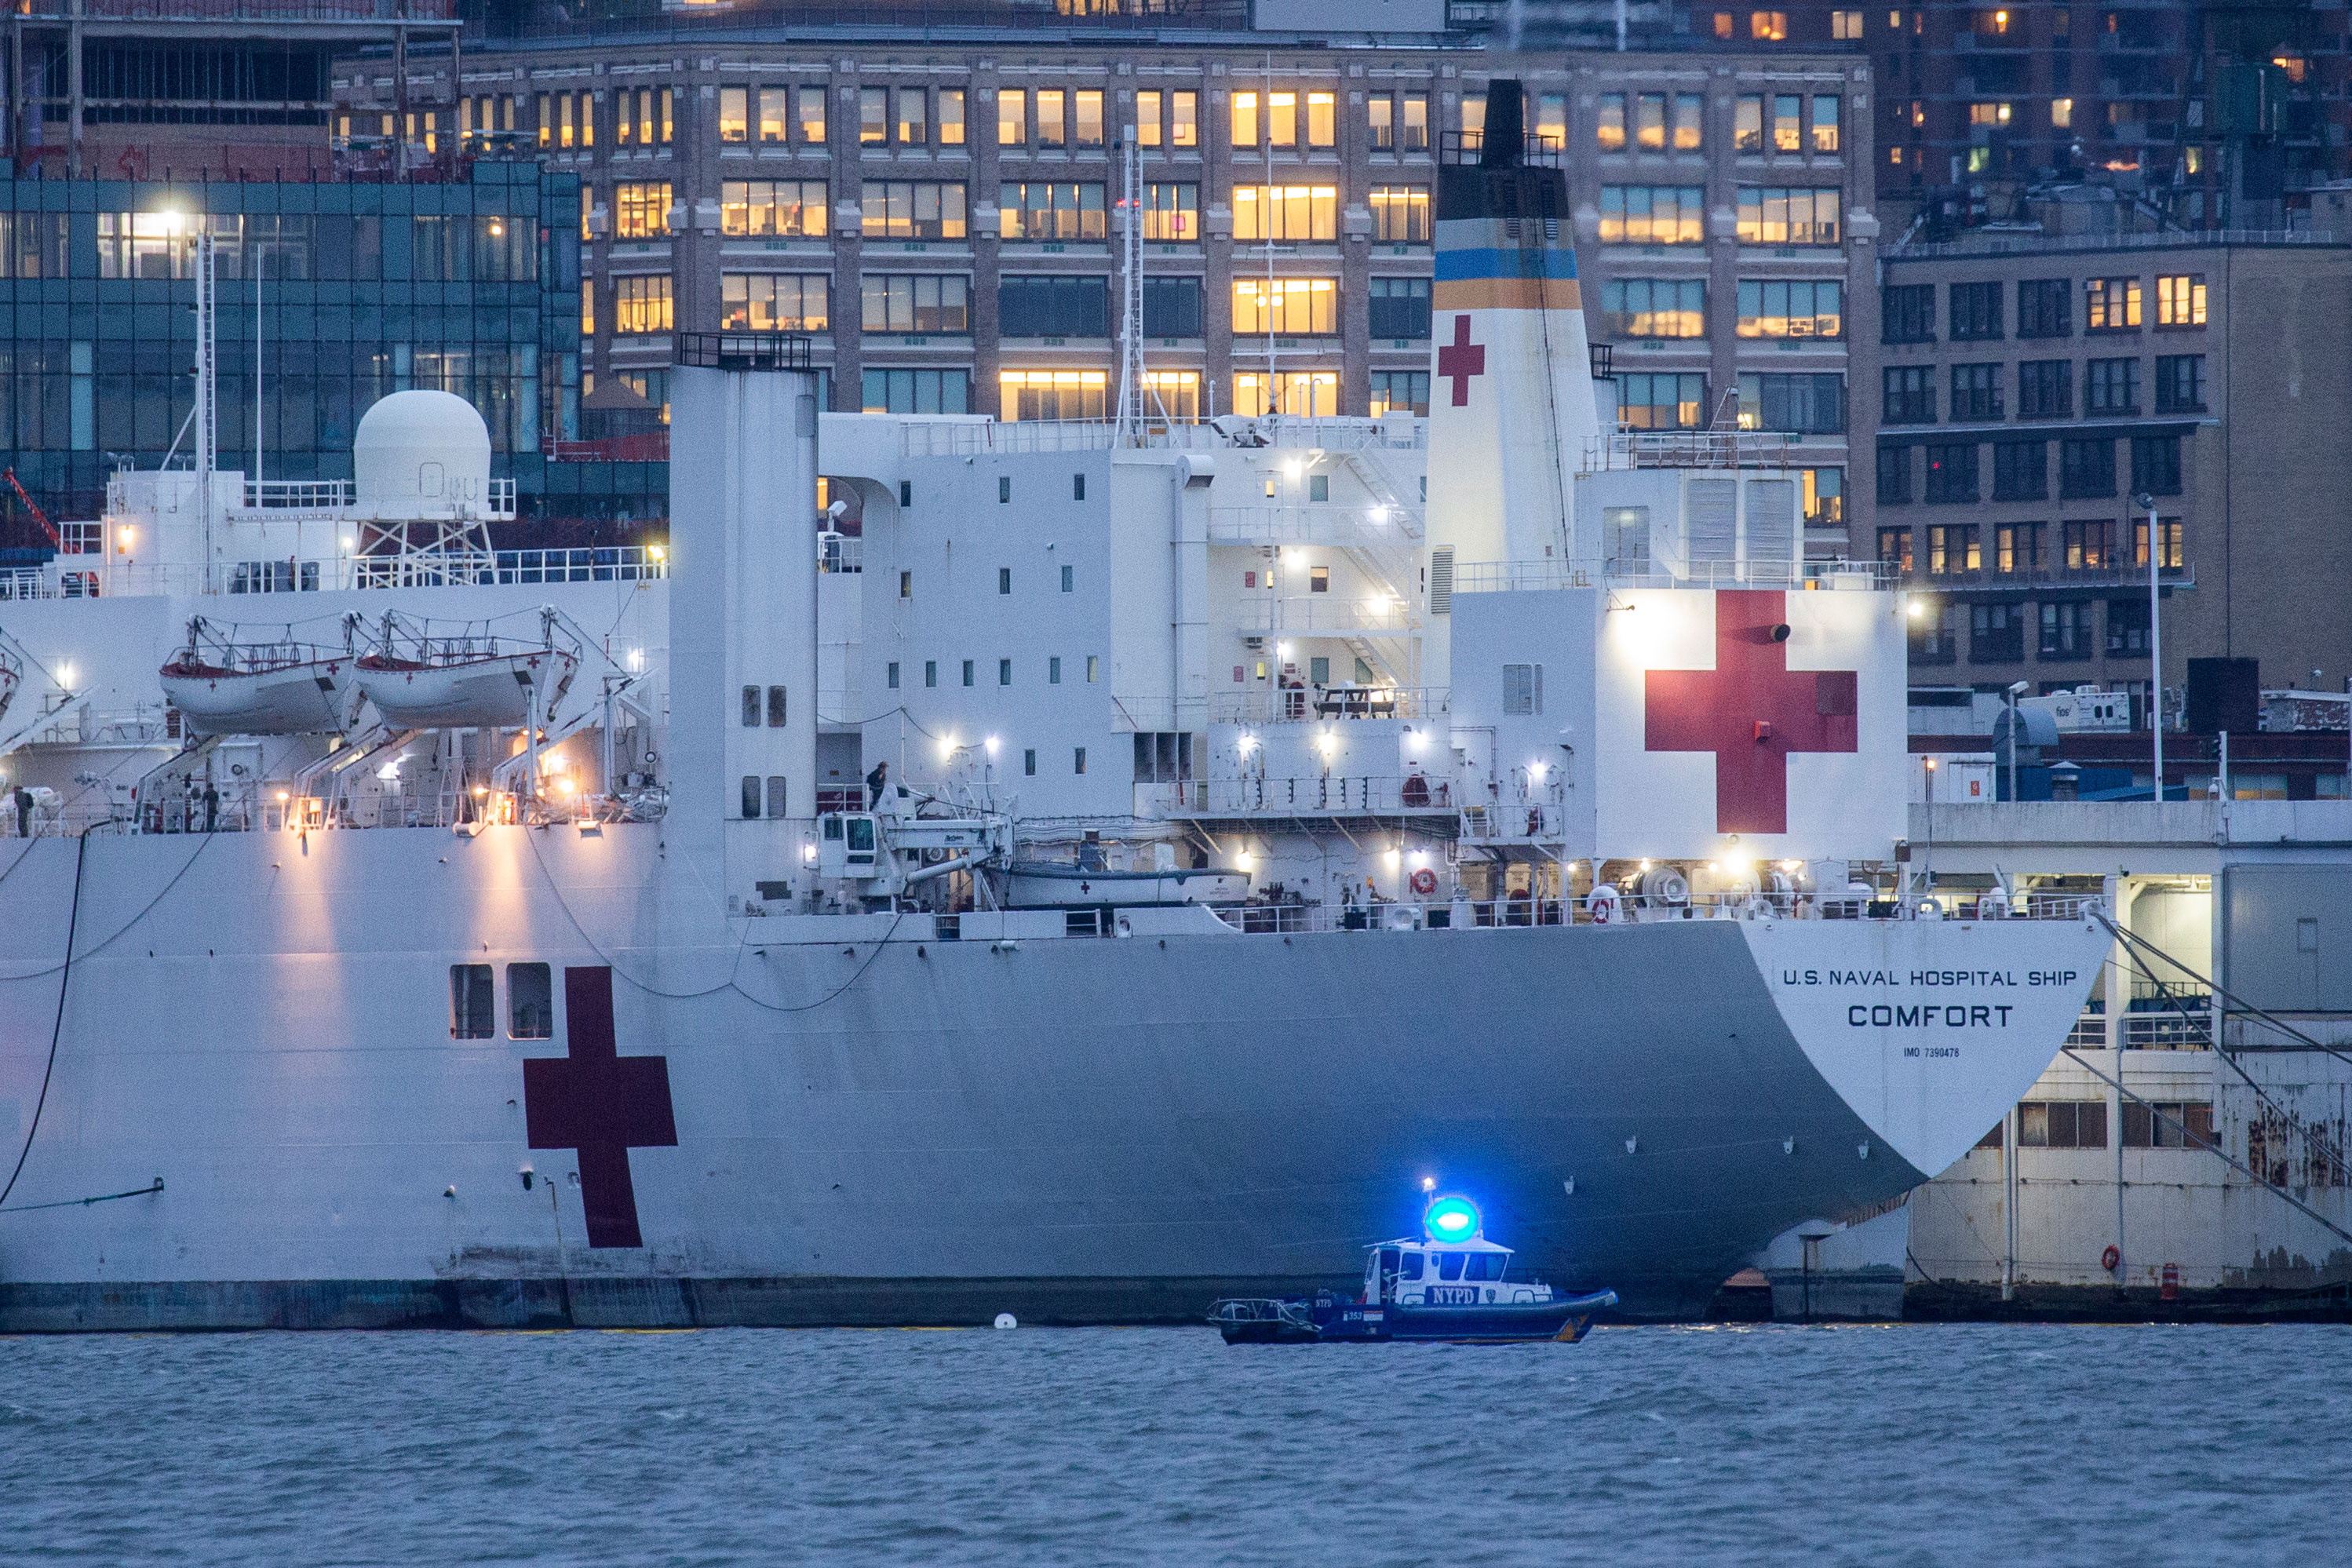 The USNS Comfort is docked at Pier 90 on April 3 in New York City.